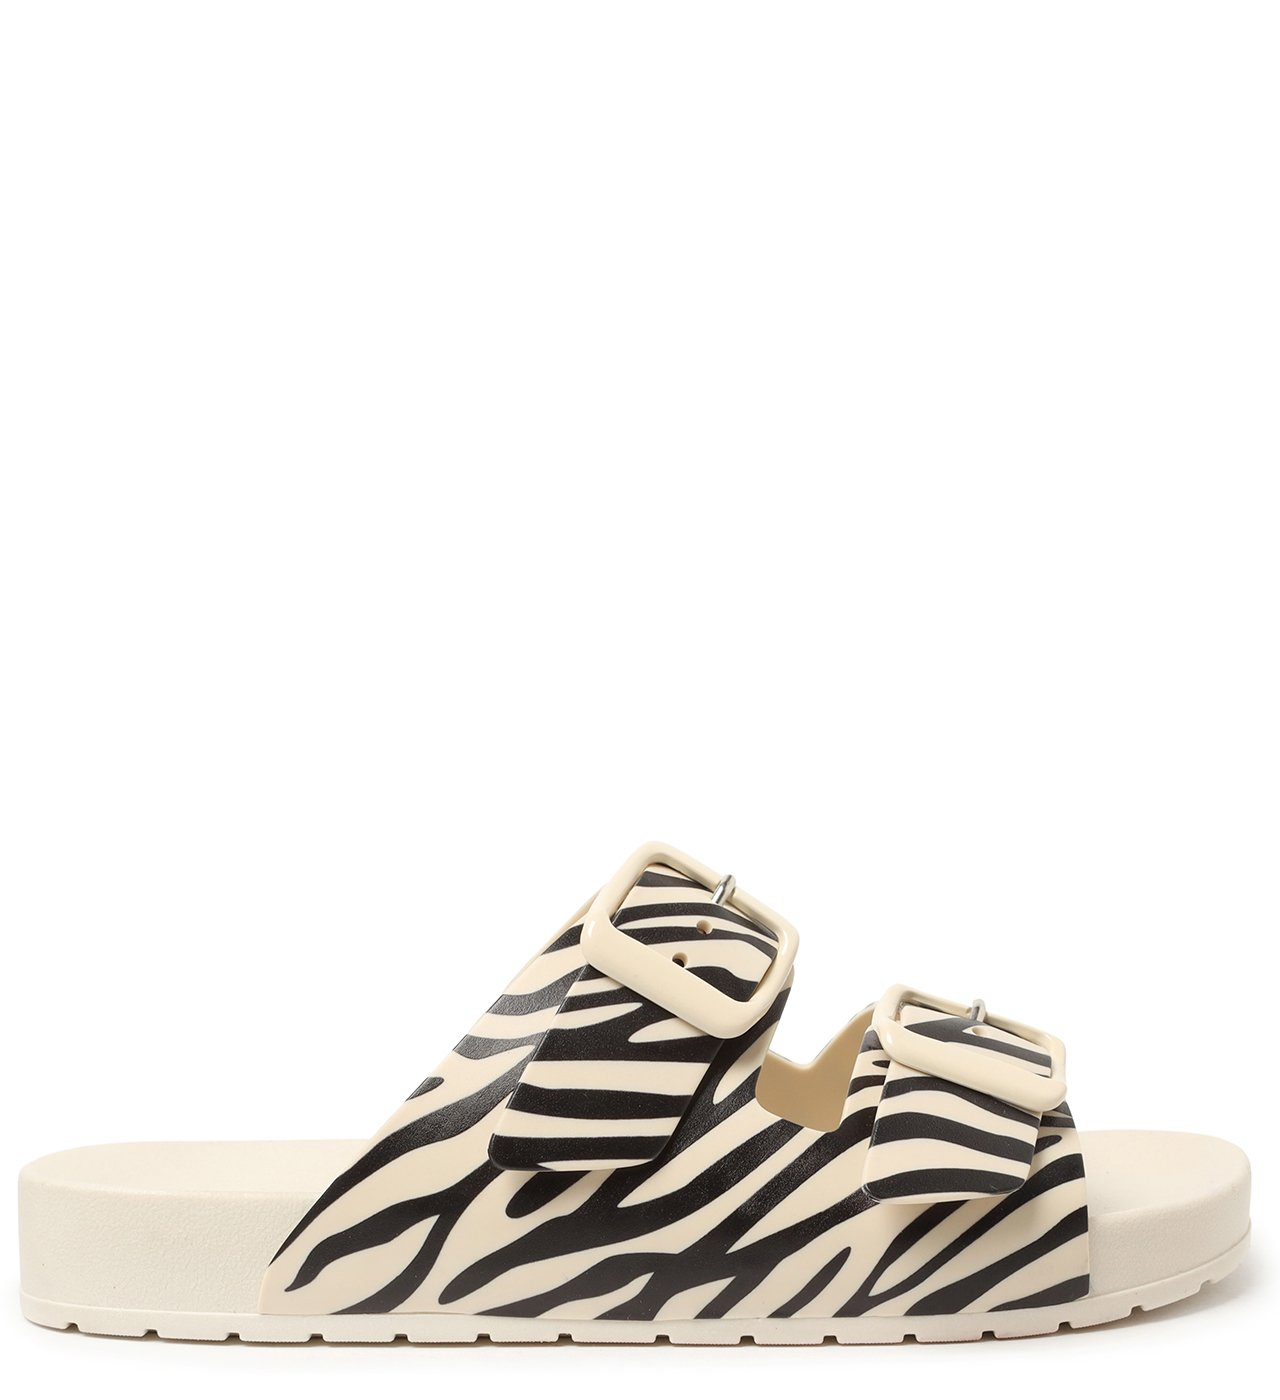 Slide Branco Animal Print Injetado Fresh | Arezzo